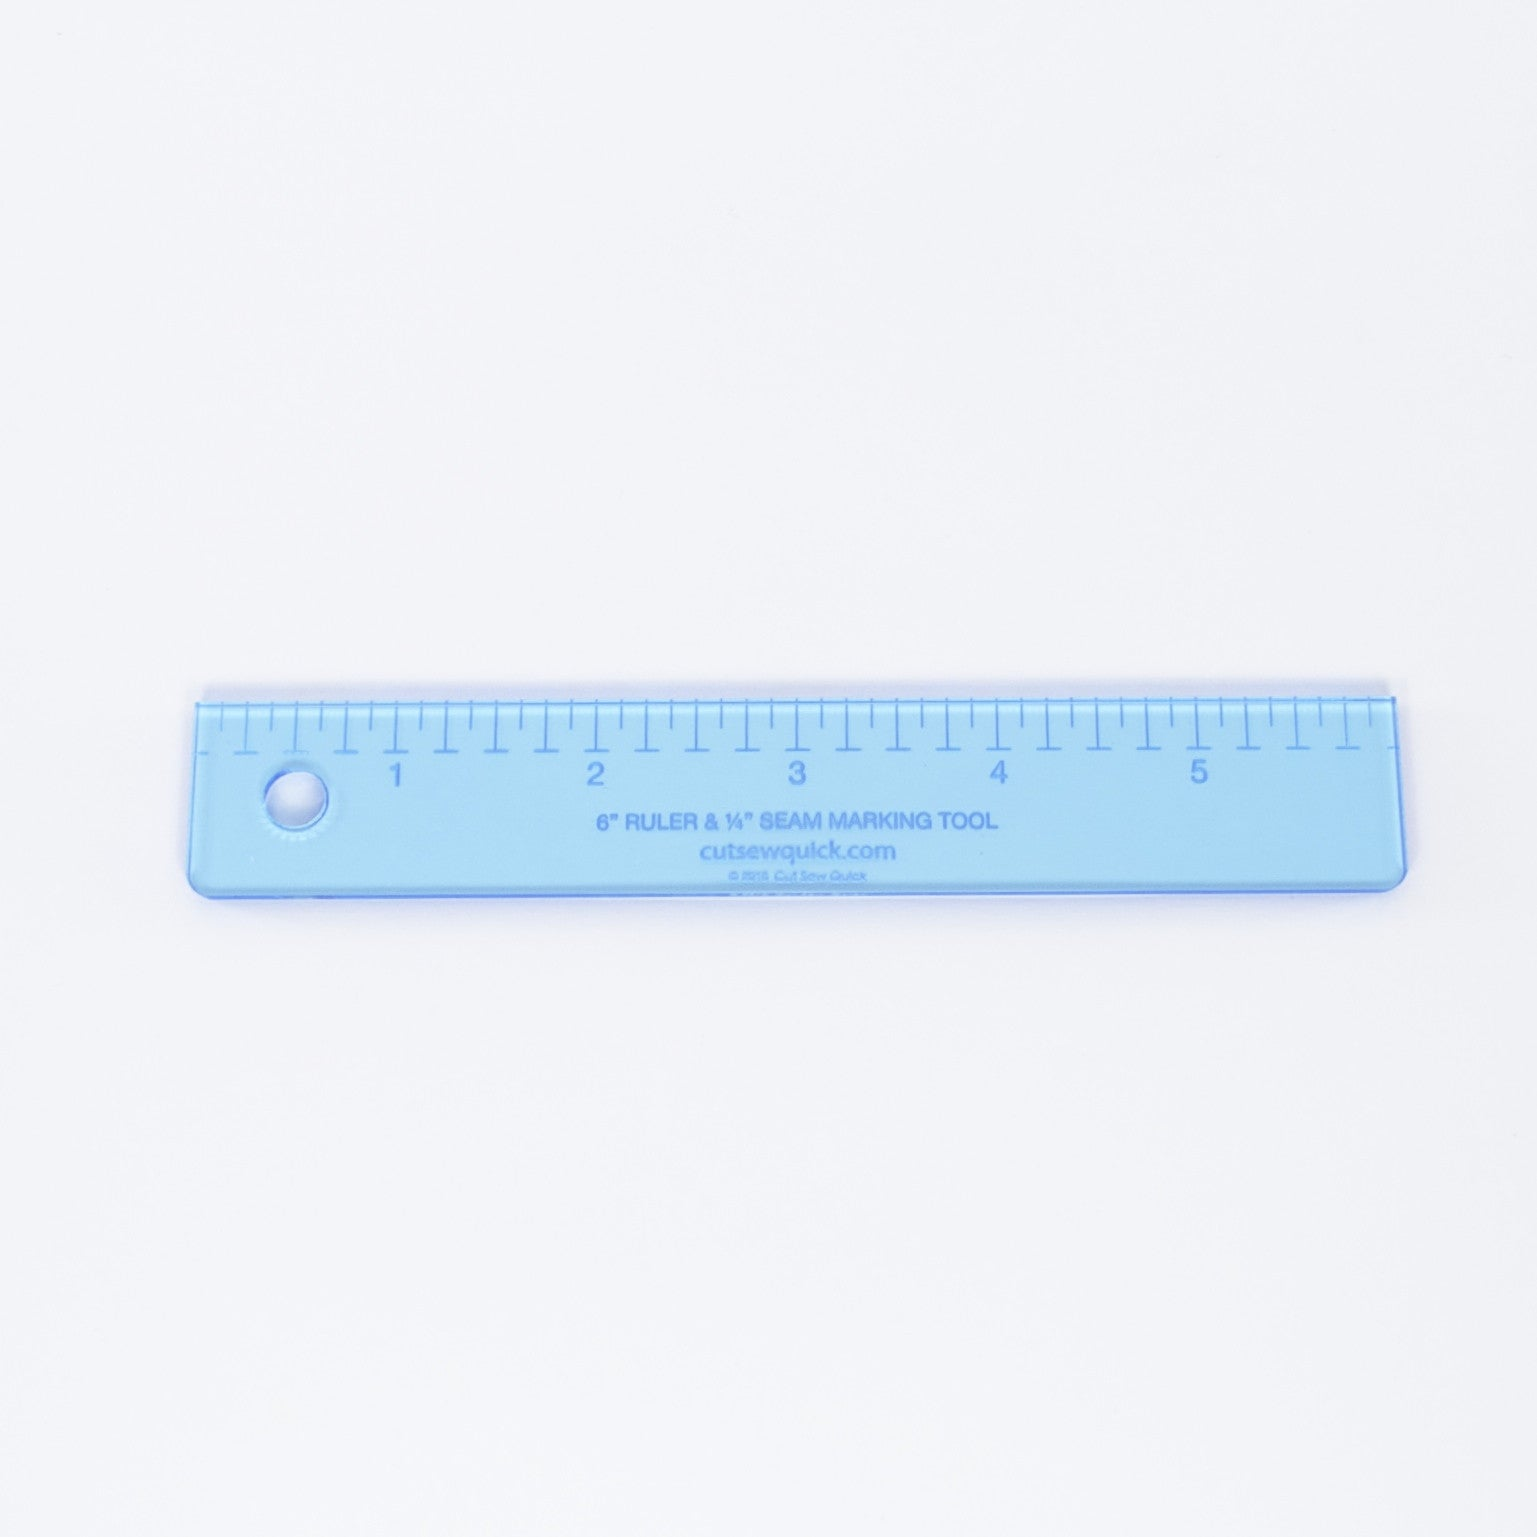 "6"" Ruler and ¼"" Seam Marking Tool"